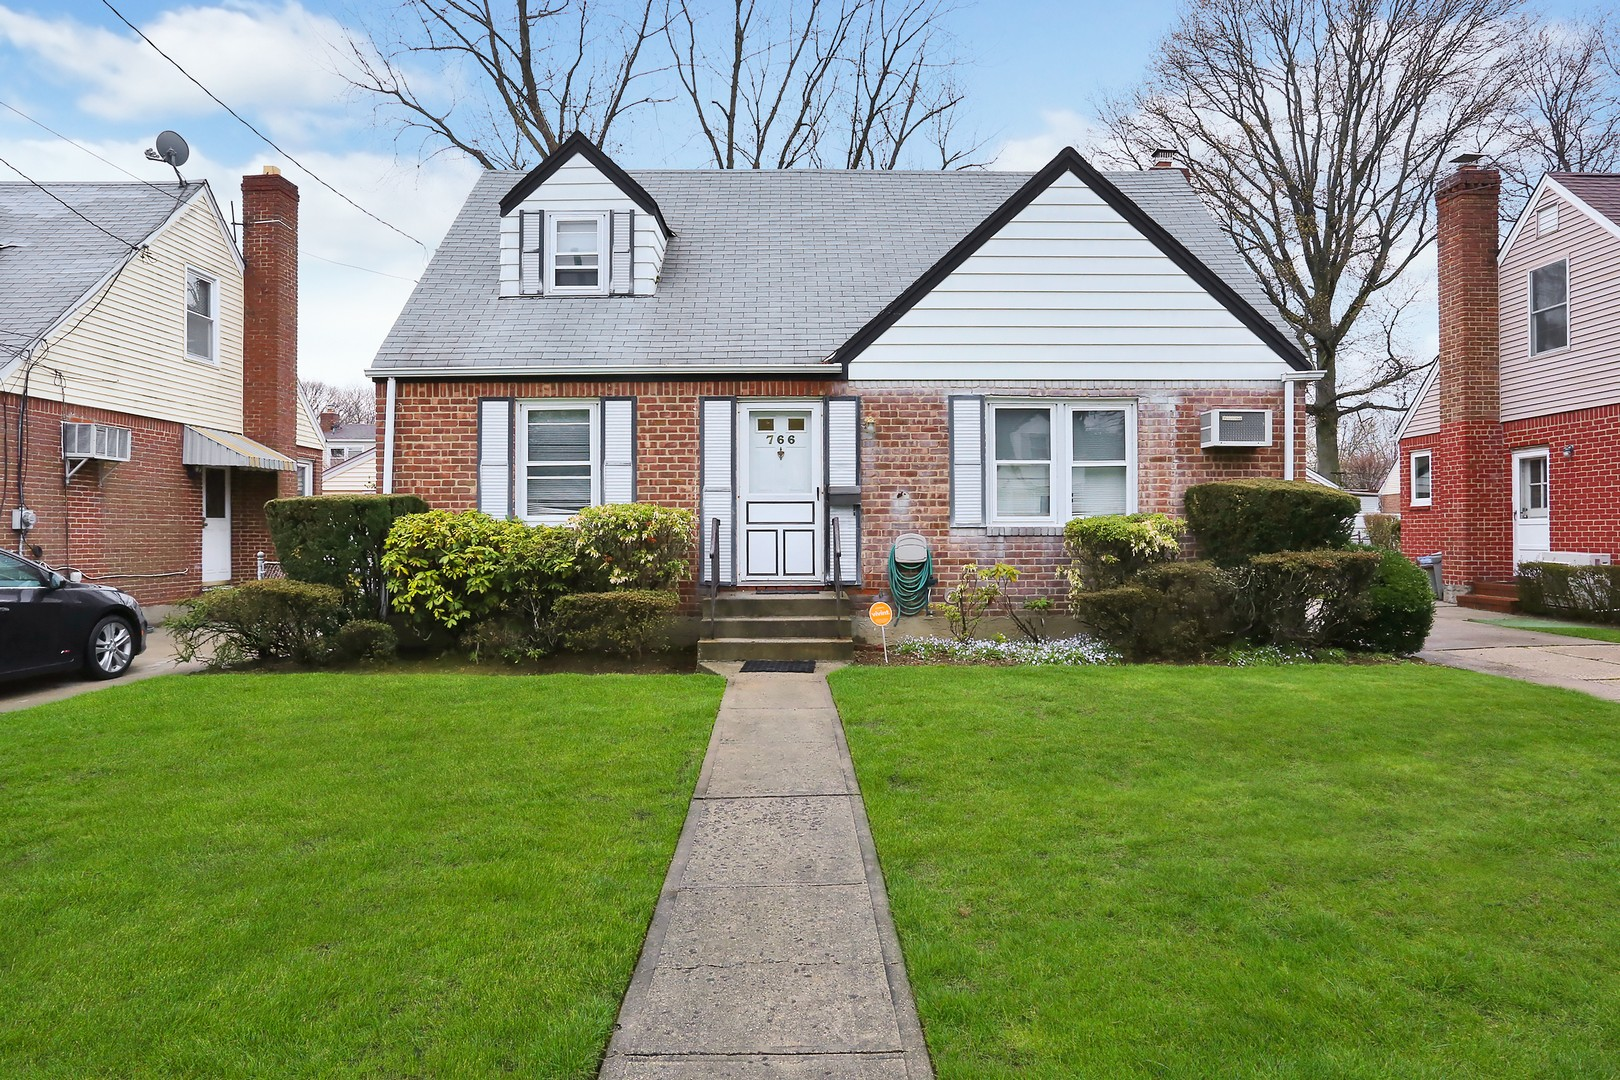 Single Family Home for Sale at Cape 766 Harrison St West Hempstead, New York, 11552 United States